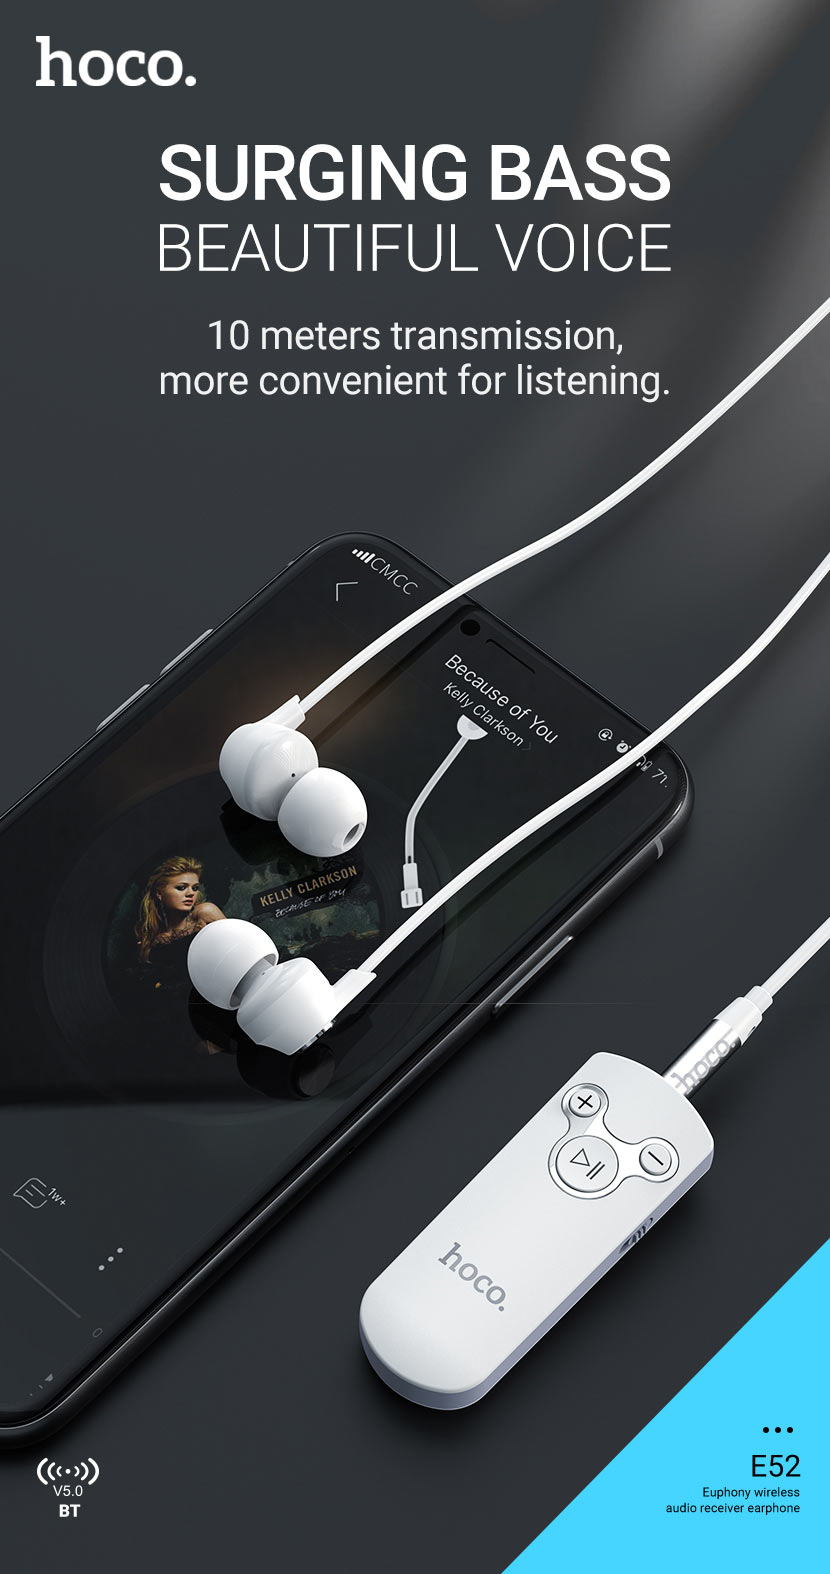 hoco news e52 euphony wireless audio receiver earphones bass en